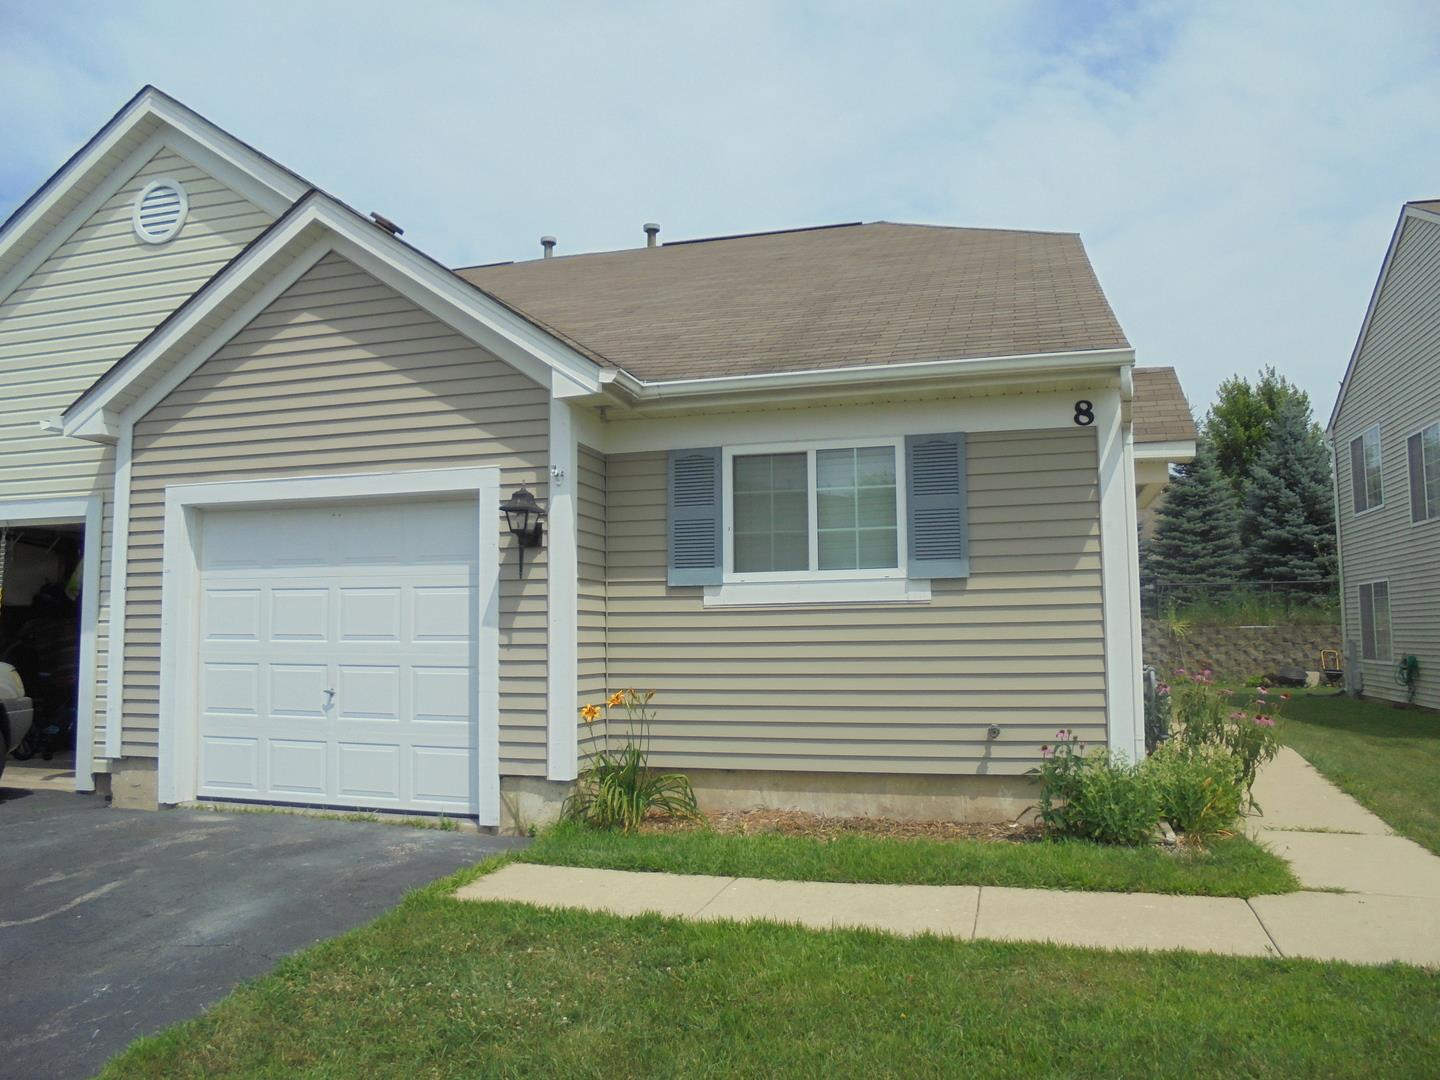 8 Ronan Court, Lake in the Hills, IL 60156 - #: 10808264